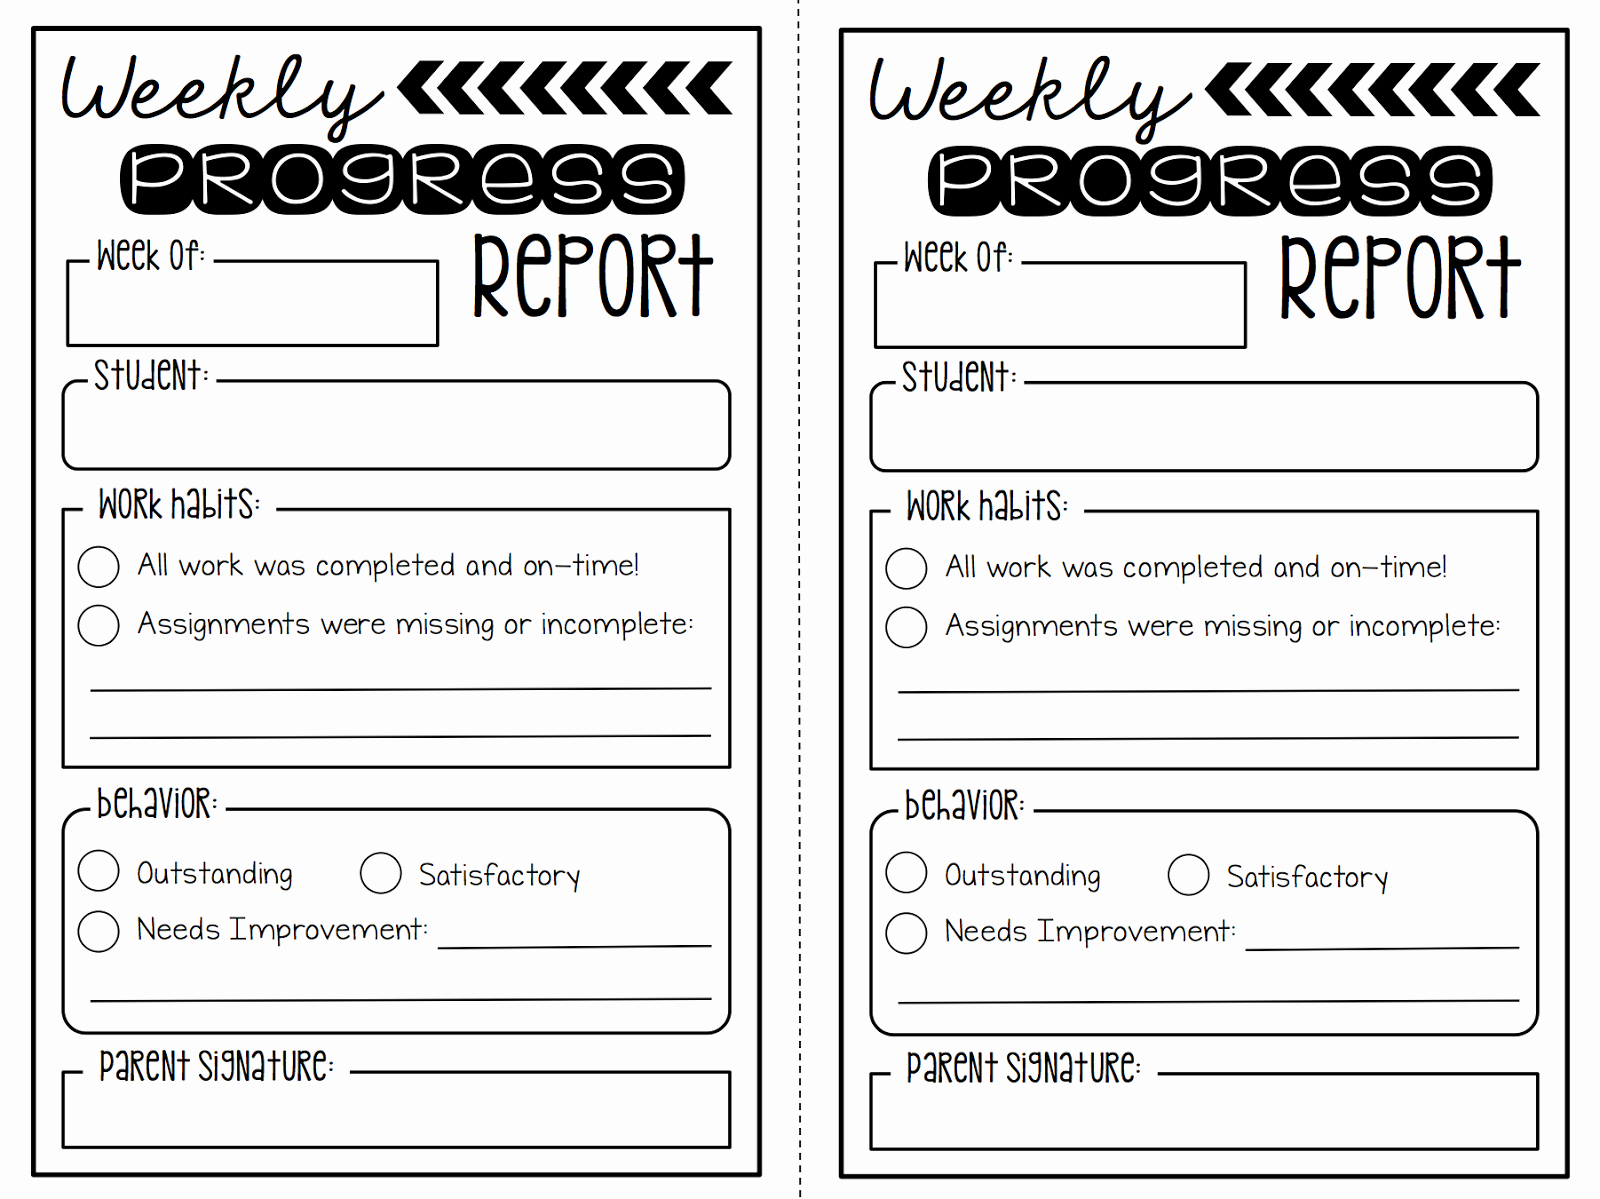 Weekly Progress Report Template Beautiful Summertime Revamp 2 Weekly Progress Reports Freebie